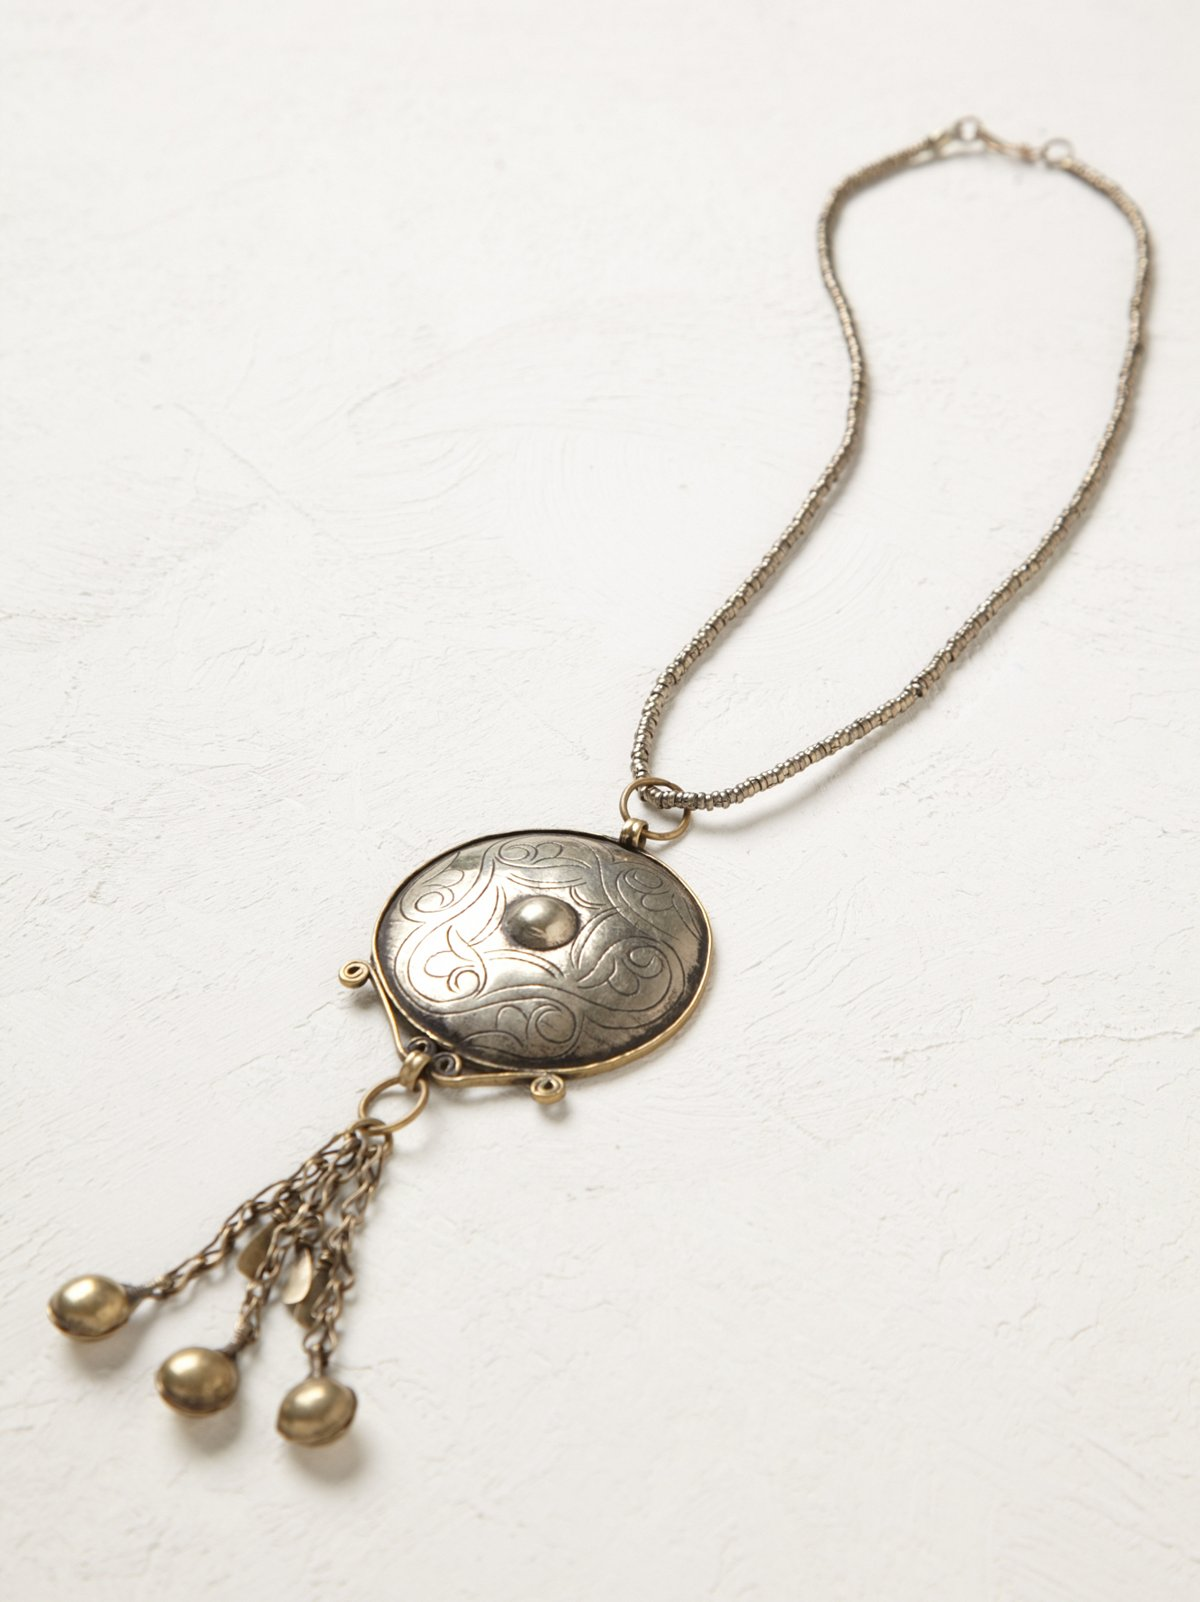 Vintage Chain and Pendant